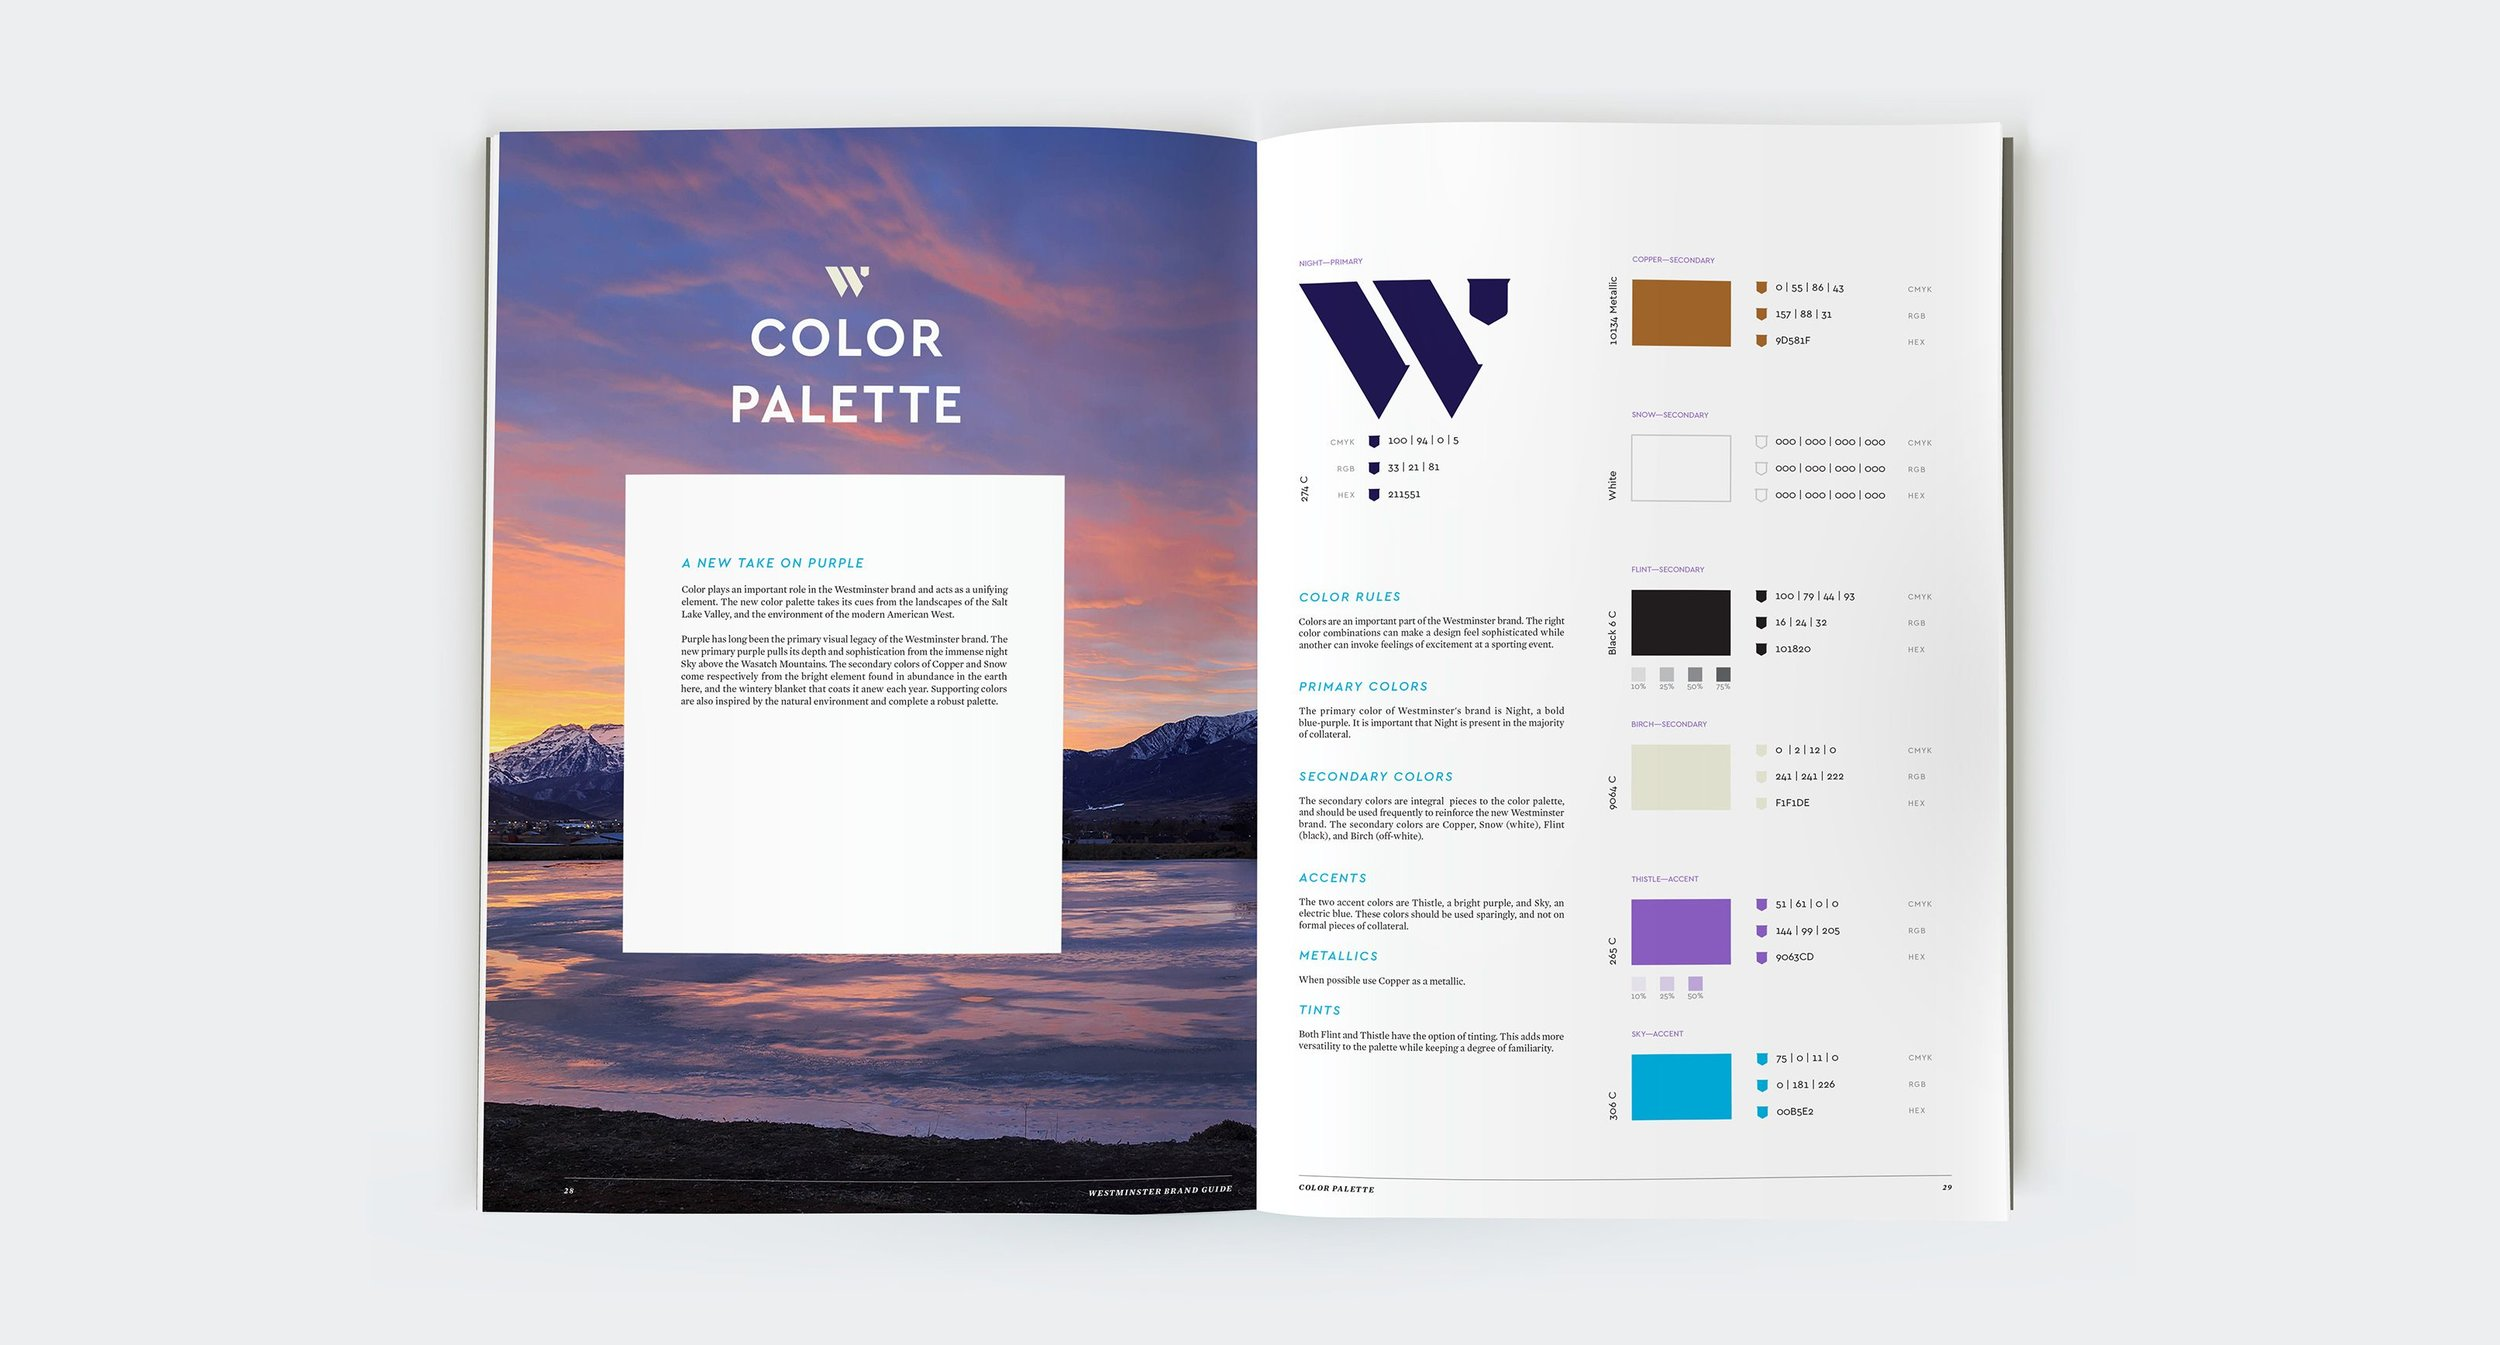 Color Palette section of the Westminster Brand Guide.